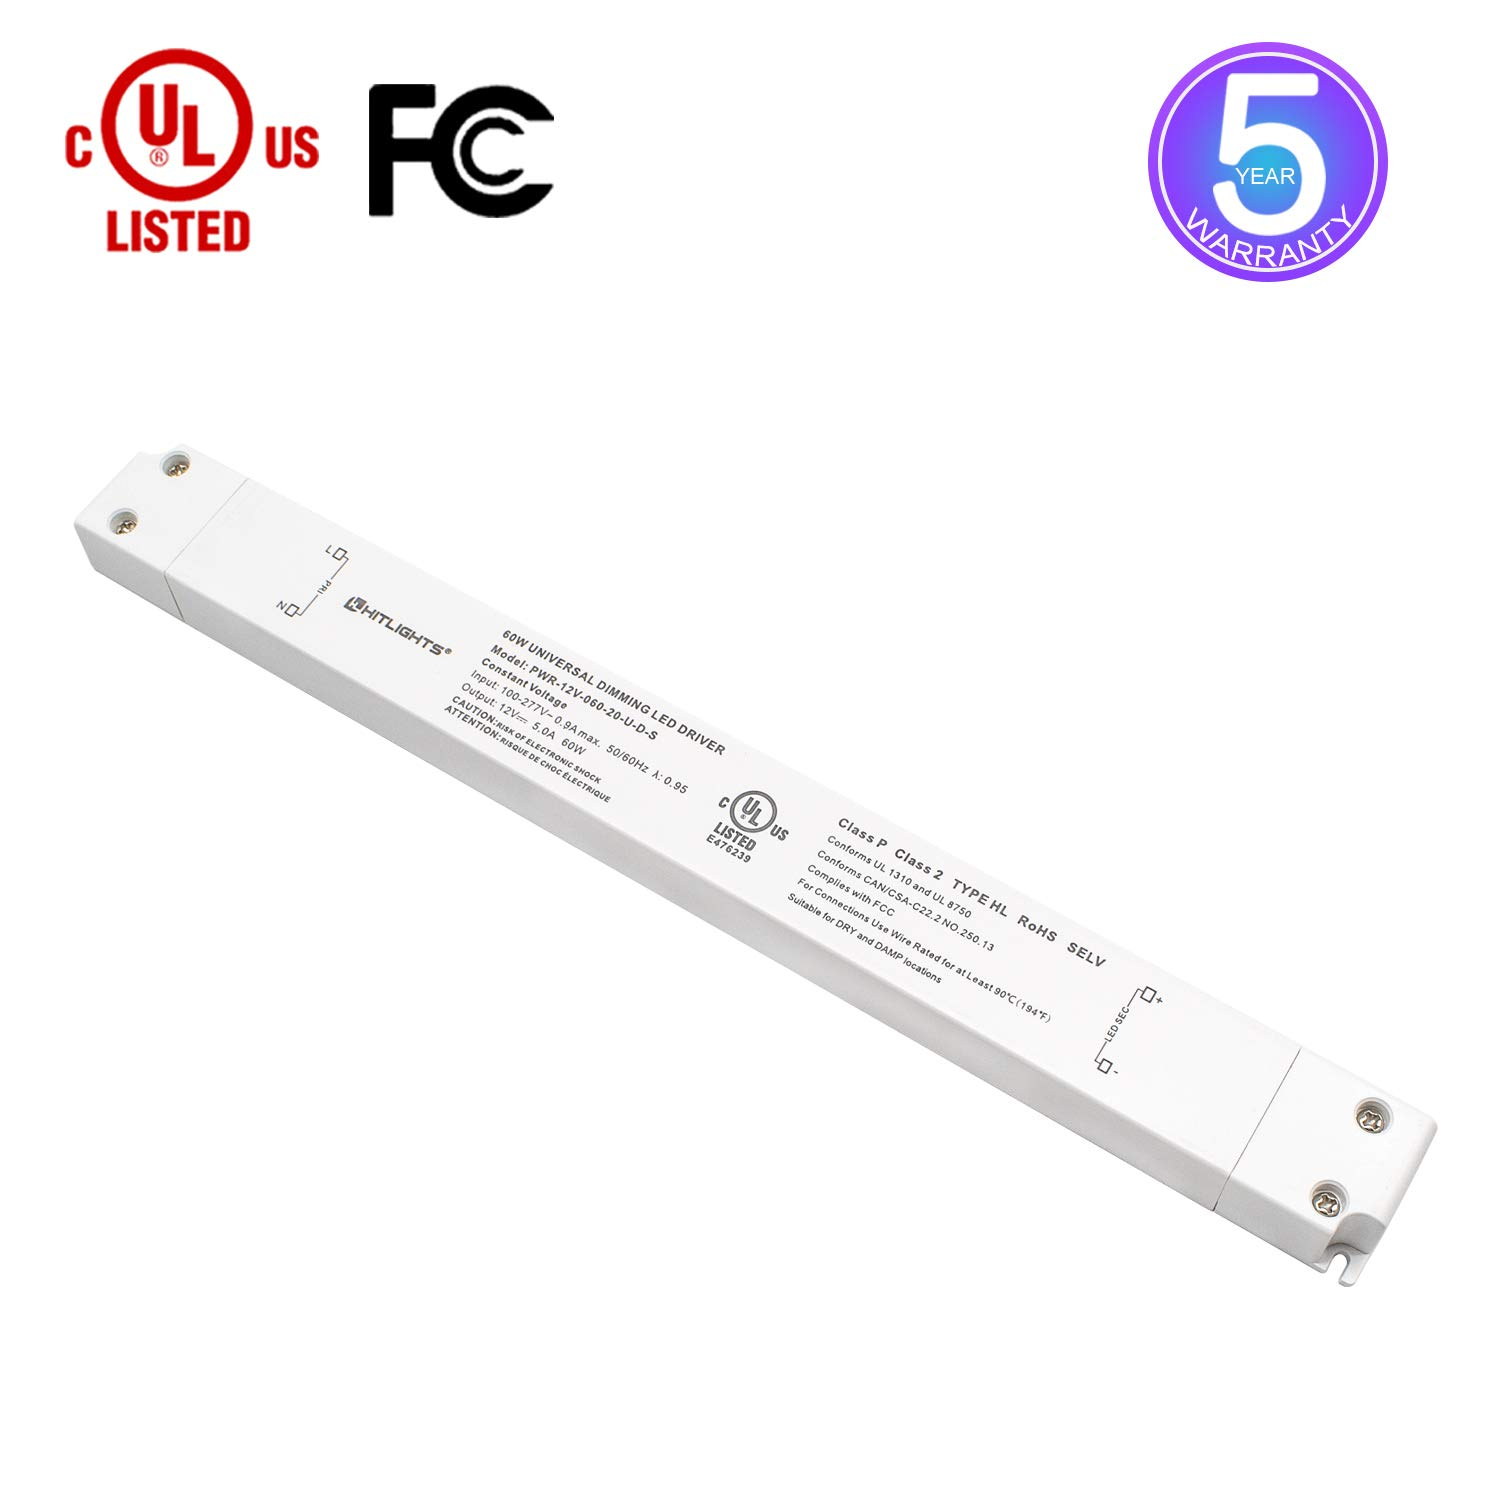 HitLights LED Driver, 60W LED Dimmable Driver Transformer 110-277VAC - 12V 5A DC Electric Dimmable Power Supply for LED Strip Lights, 12V Constant LED Products